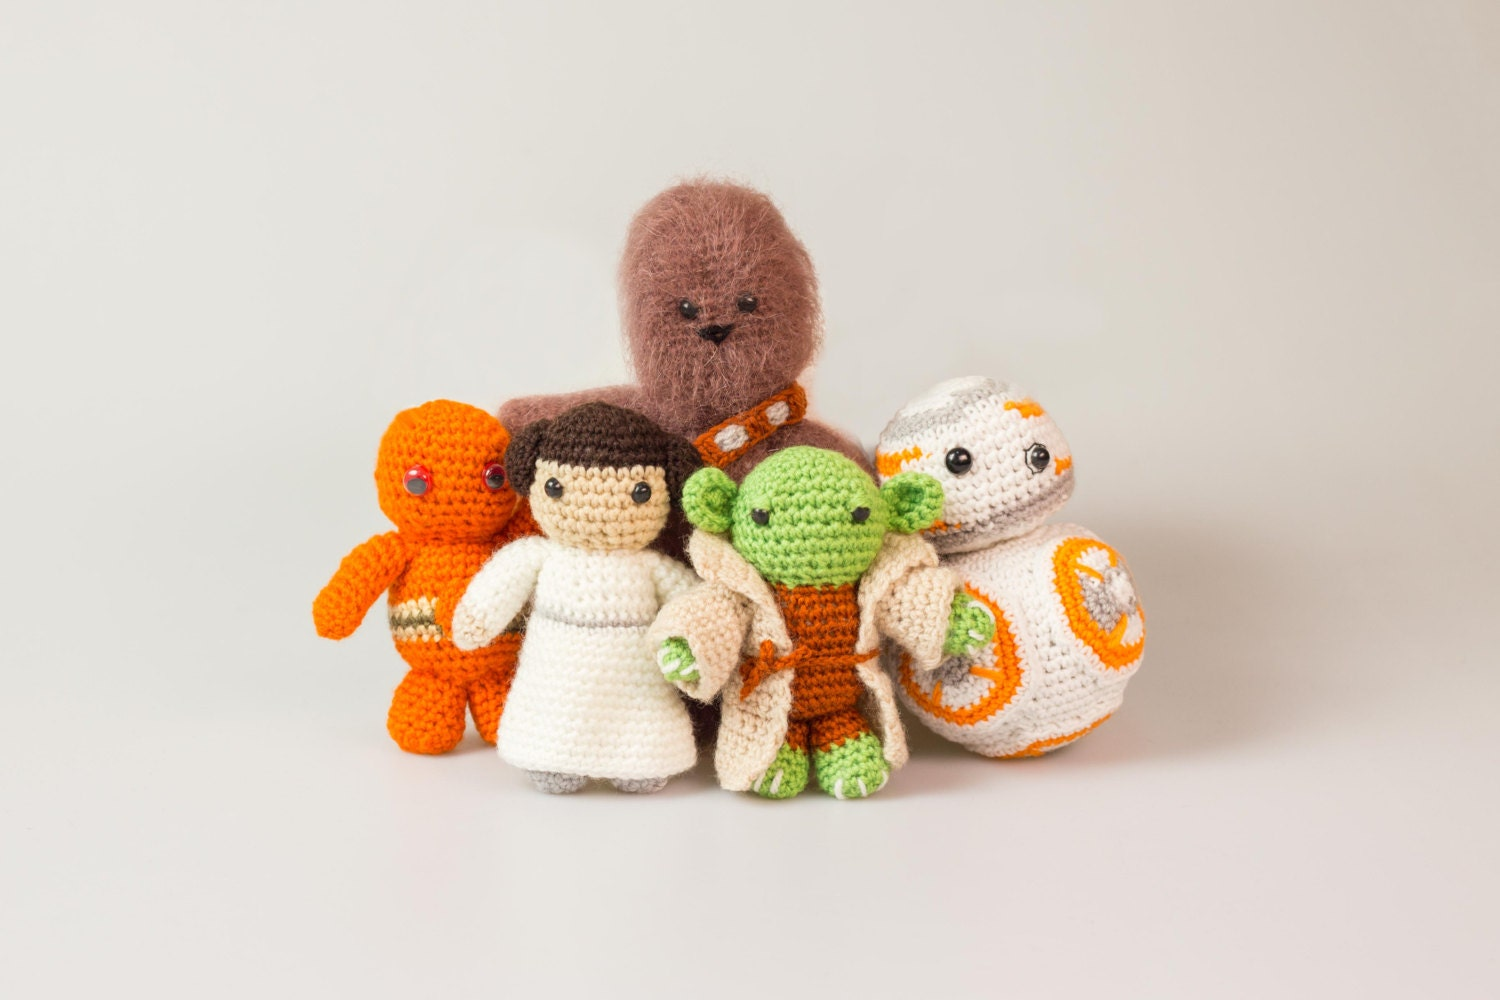 Star Wars Crochet Patterns Free Leia Crochet Star Wars Toys ...